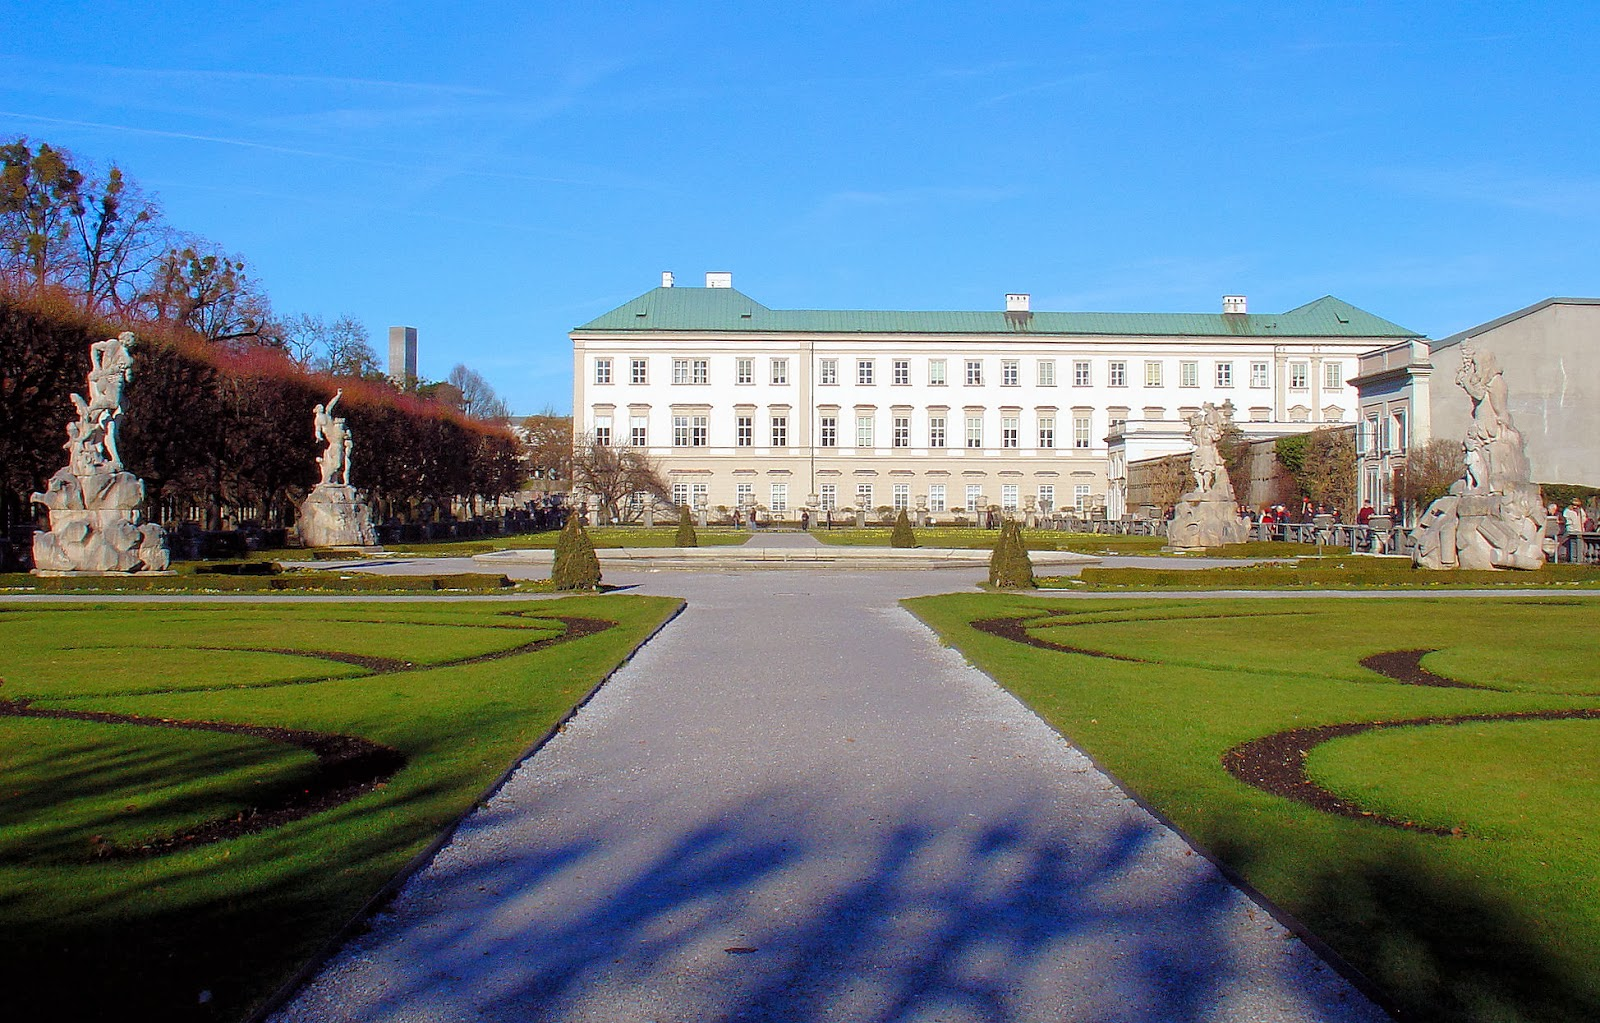 Mirabell Palace and Gardens even looks beautiful in the wintertime.